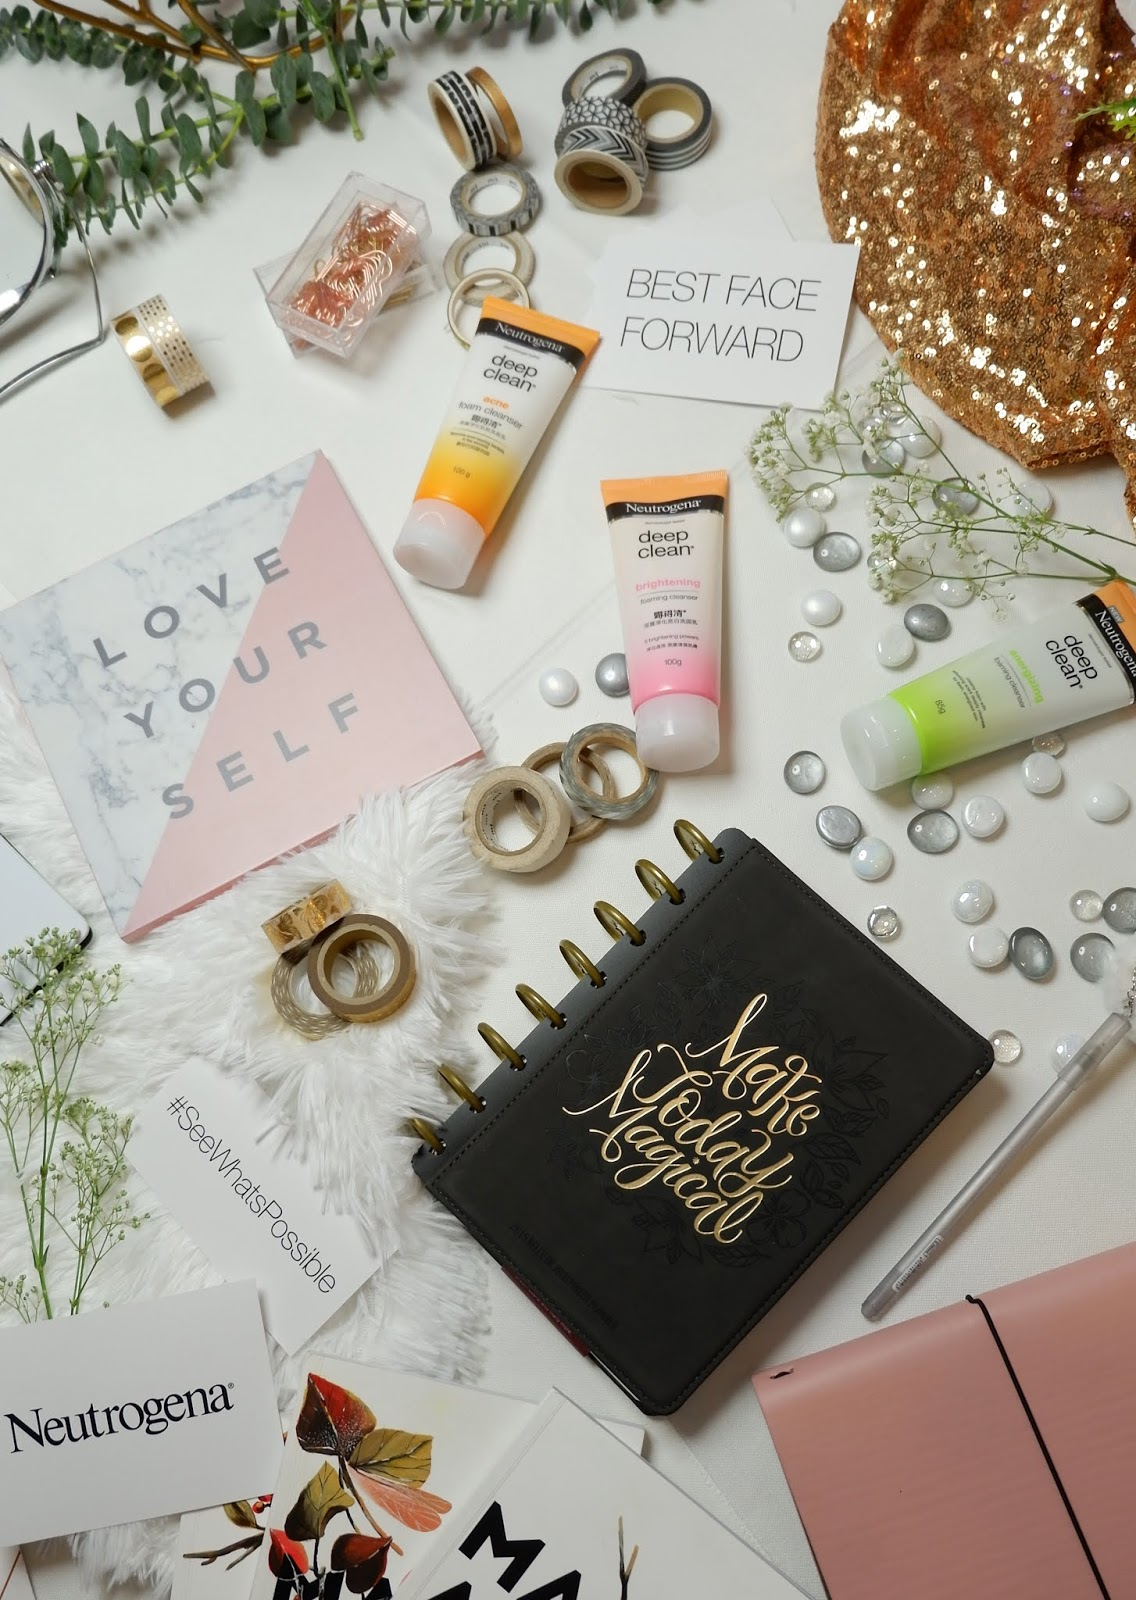 NEUTROGENA AND BELLE DE JOUR POWER PLANNER PARTNER IN HELPING FILIPINAS SEE WHAT'S POSSIBLE